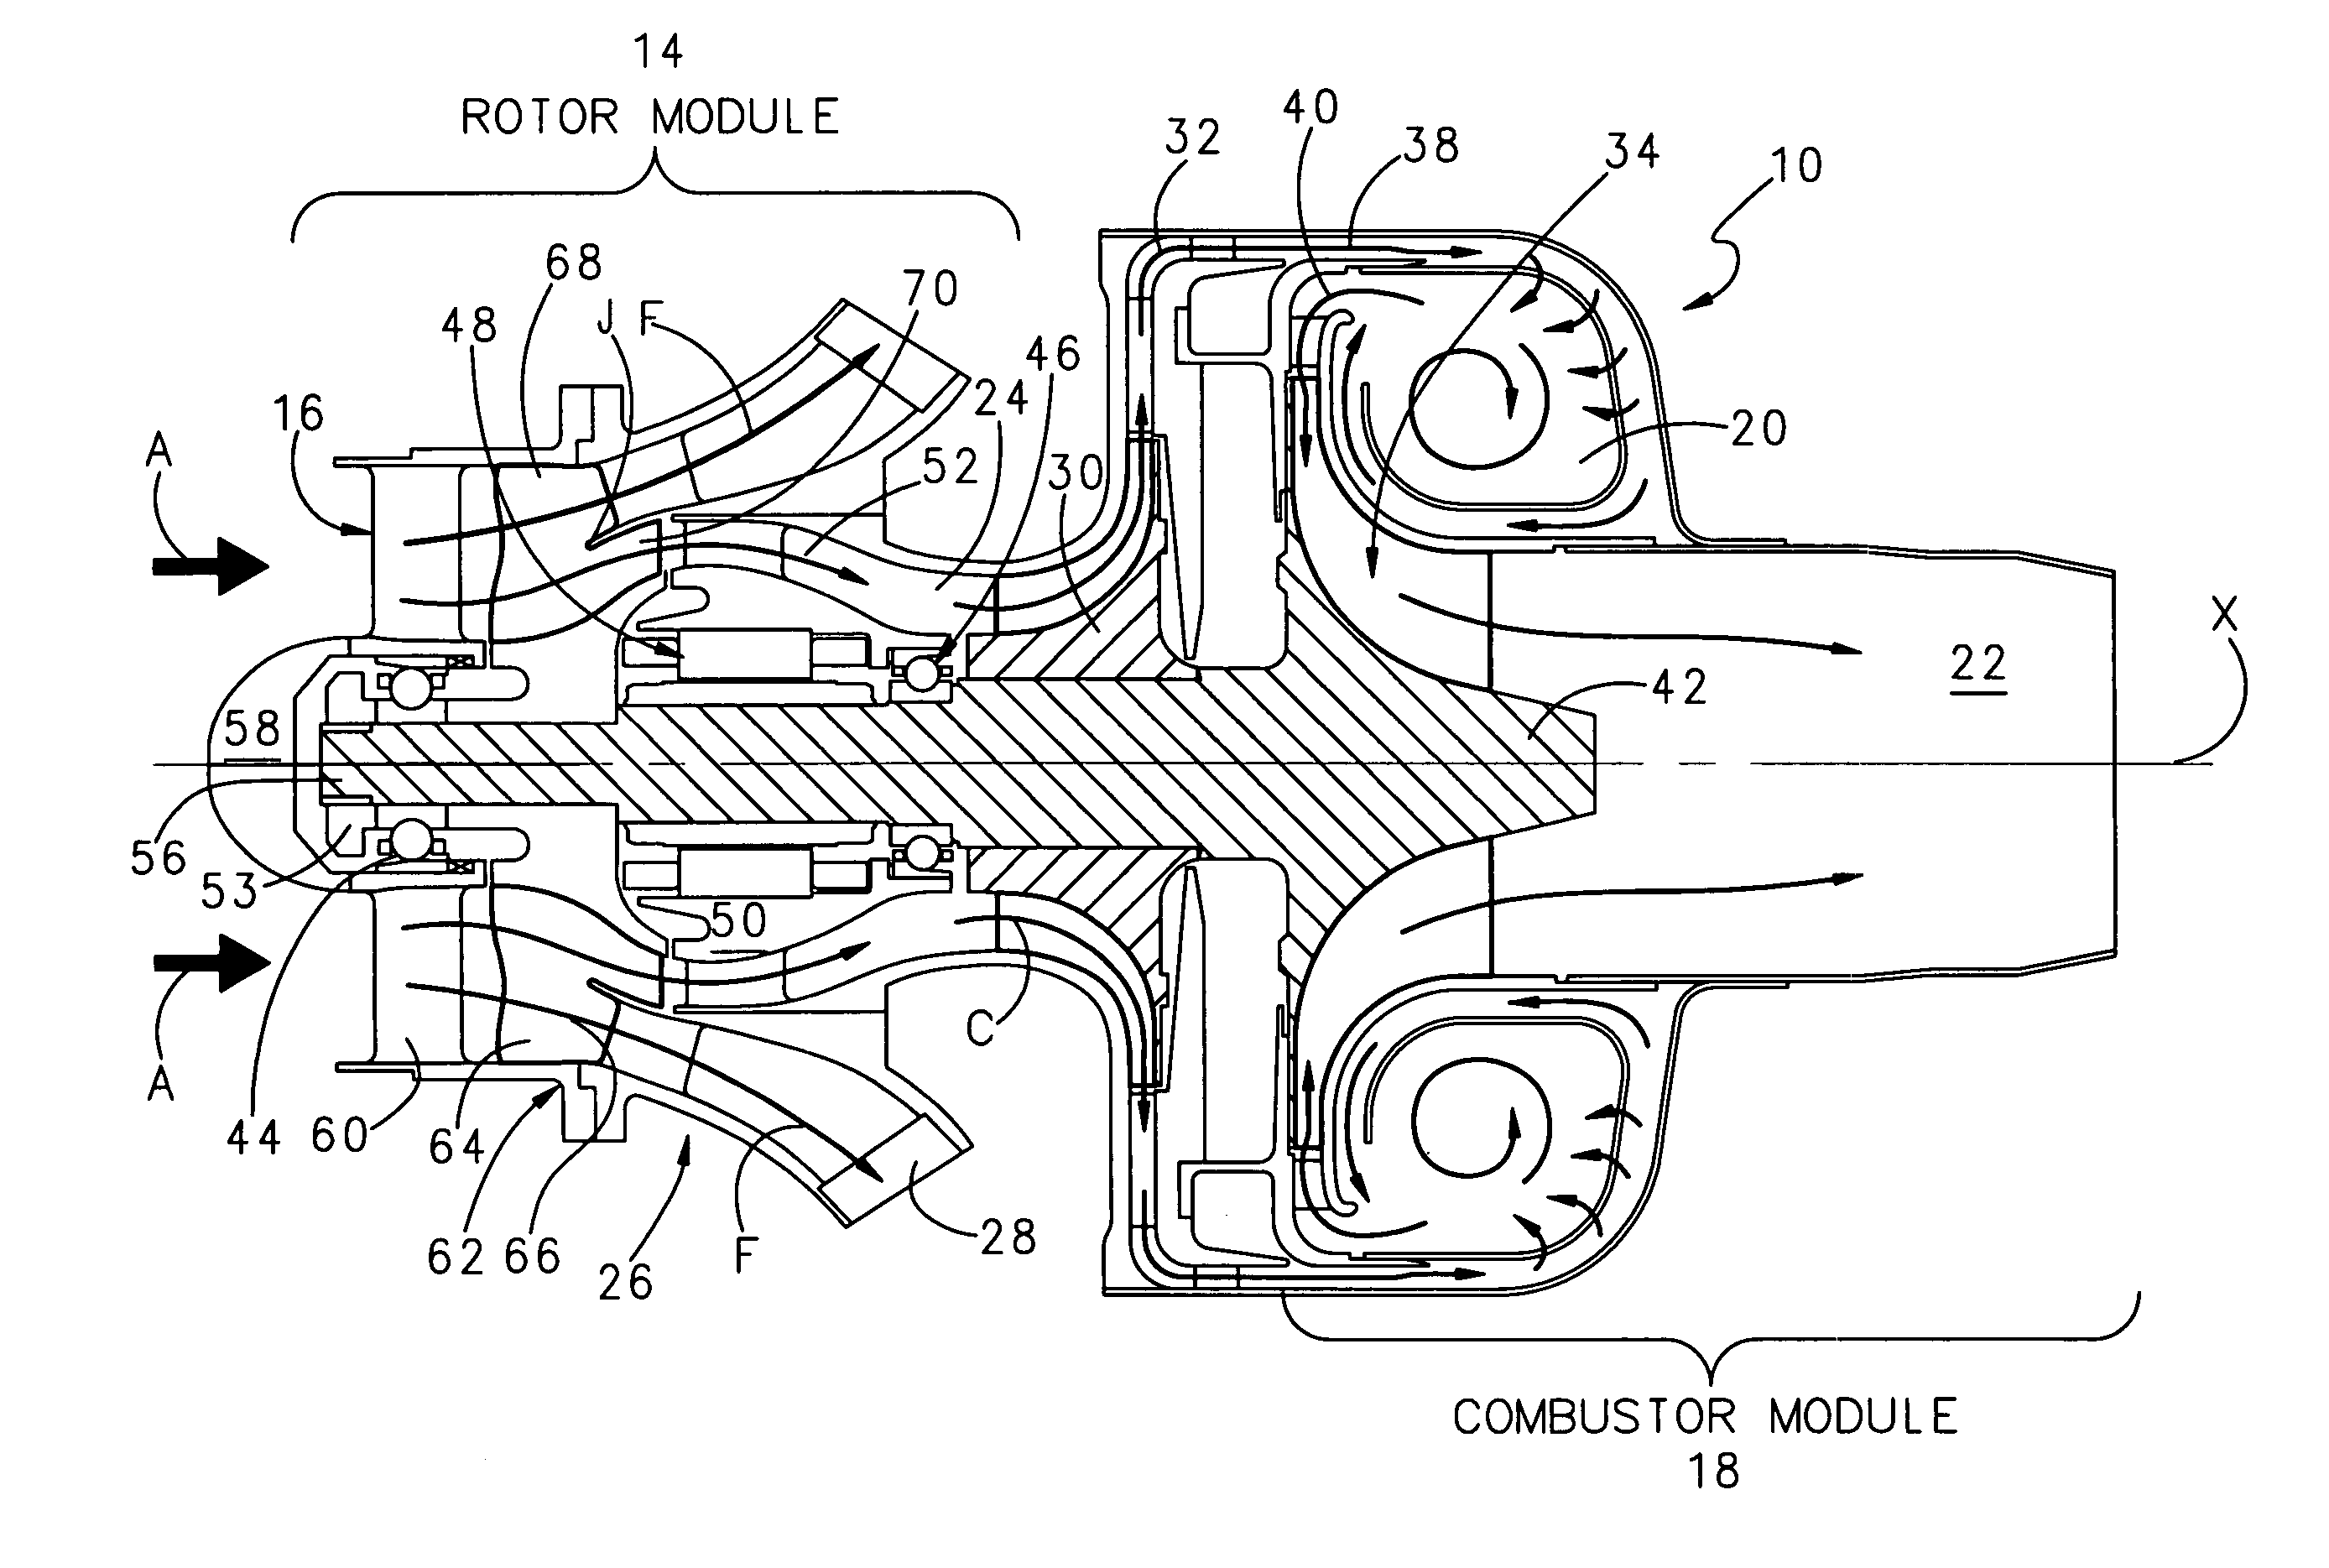 Centrifugal Vs Axial Compressors In Ww2 Jets